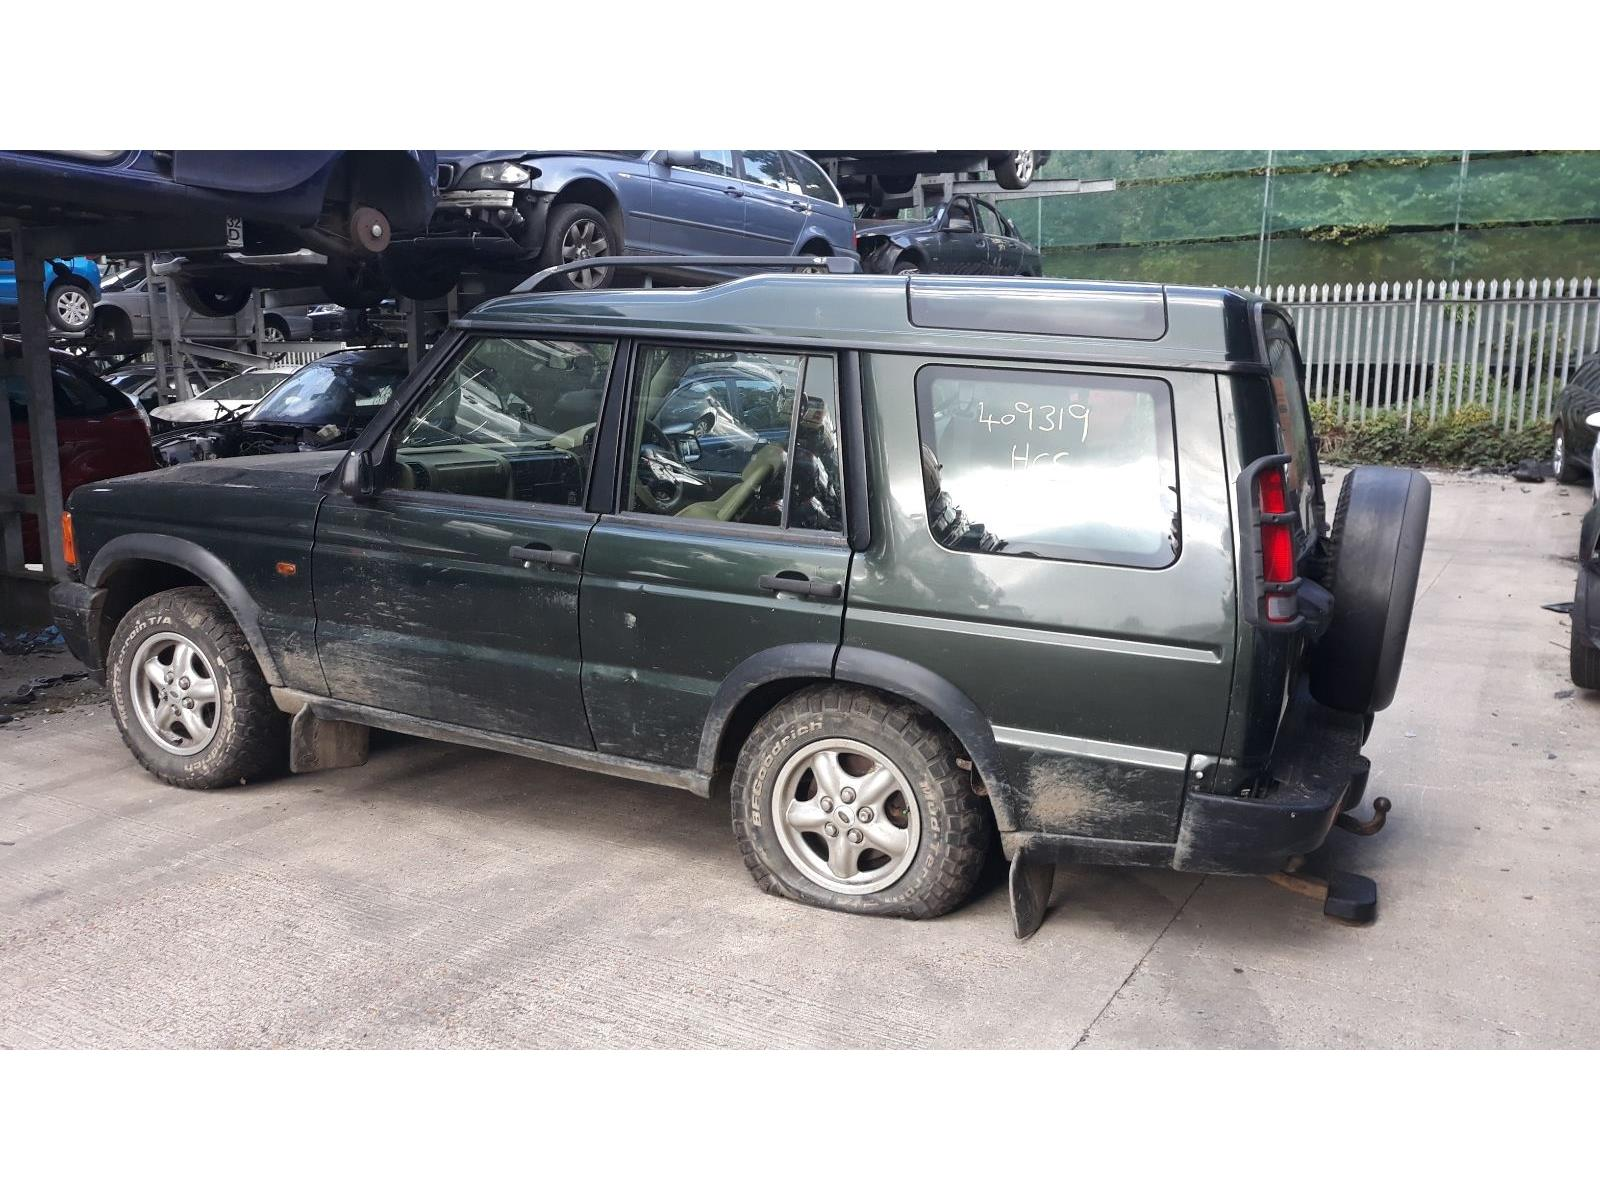 Land Rover Discovery 1998 To 2003 Gs 5 Seat Door 4x4 Scrap Salvage Car For Sale Auction Silverlake Autoparts